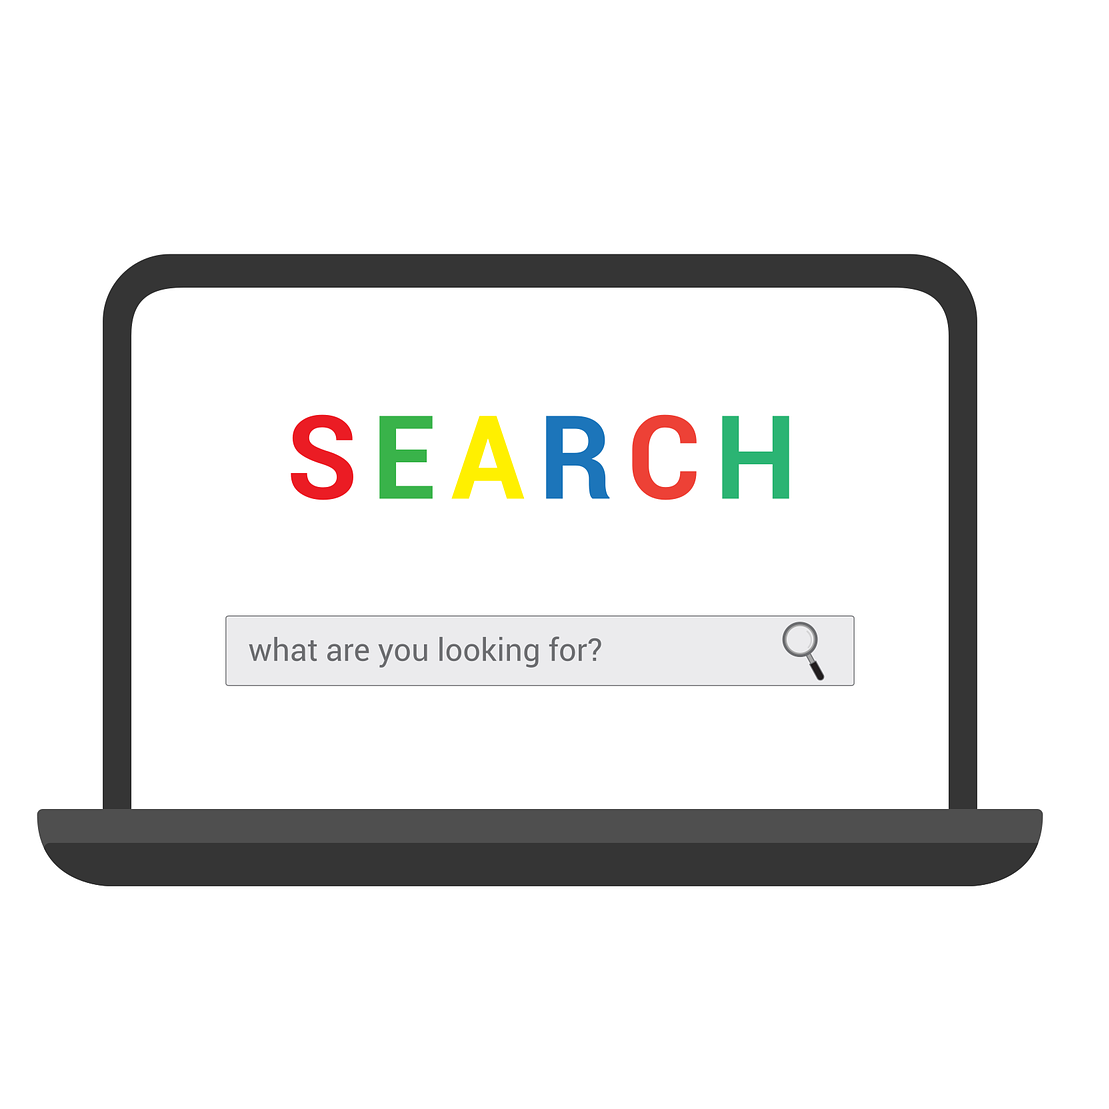 With Google Reverse Image Search you can discover photos and their origin from around the web.